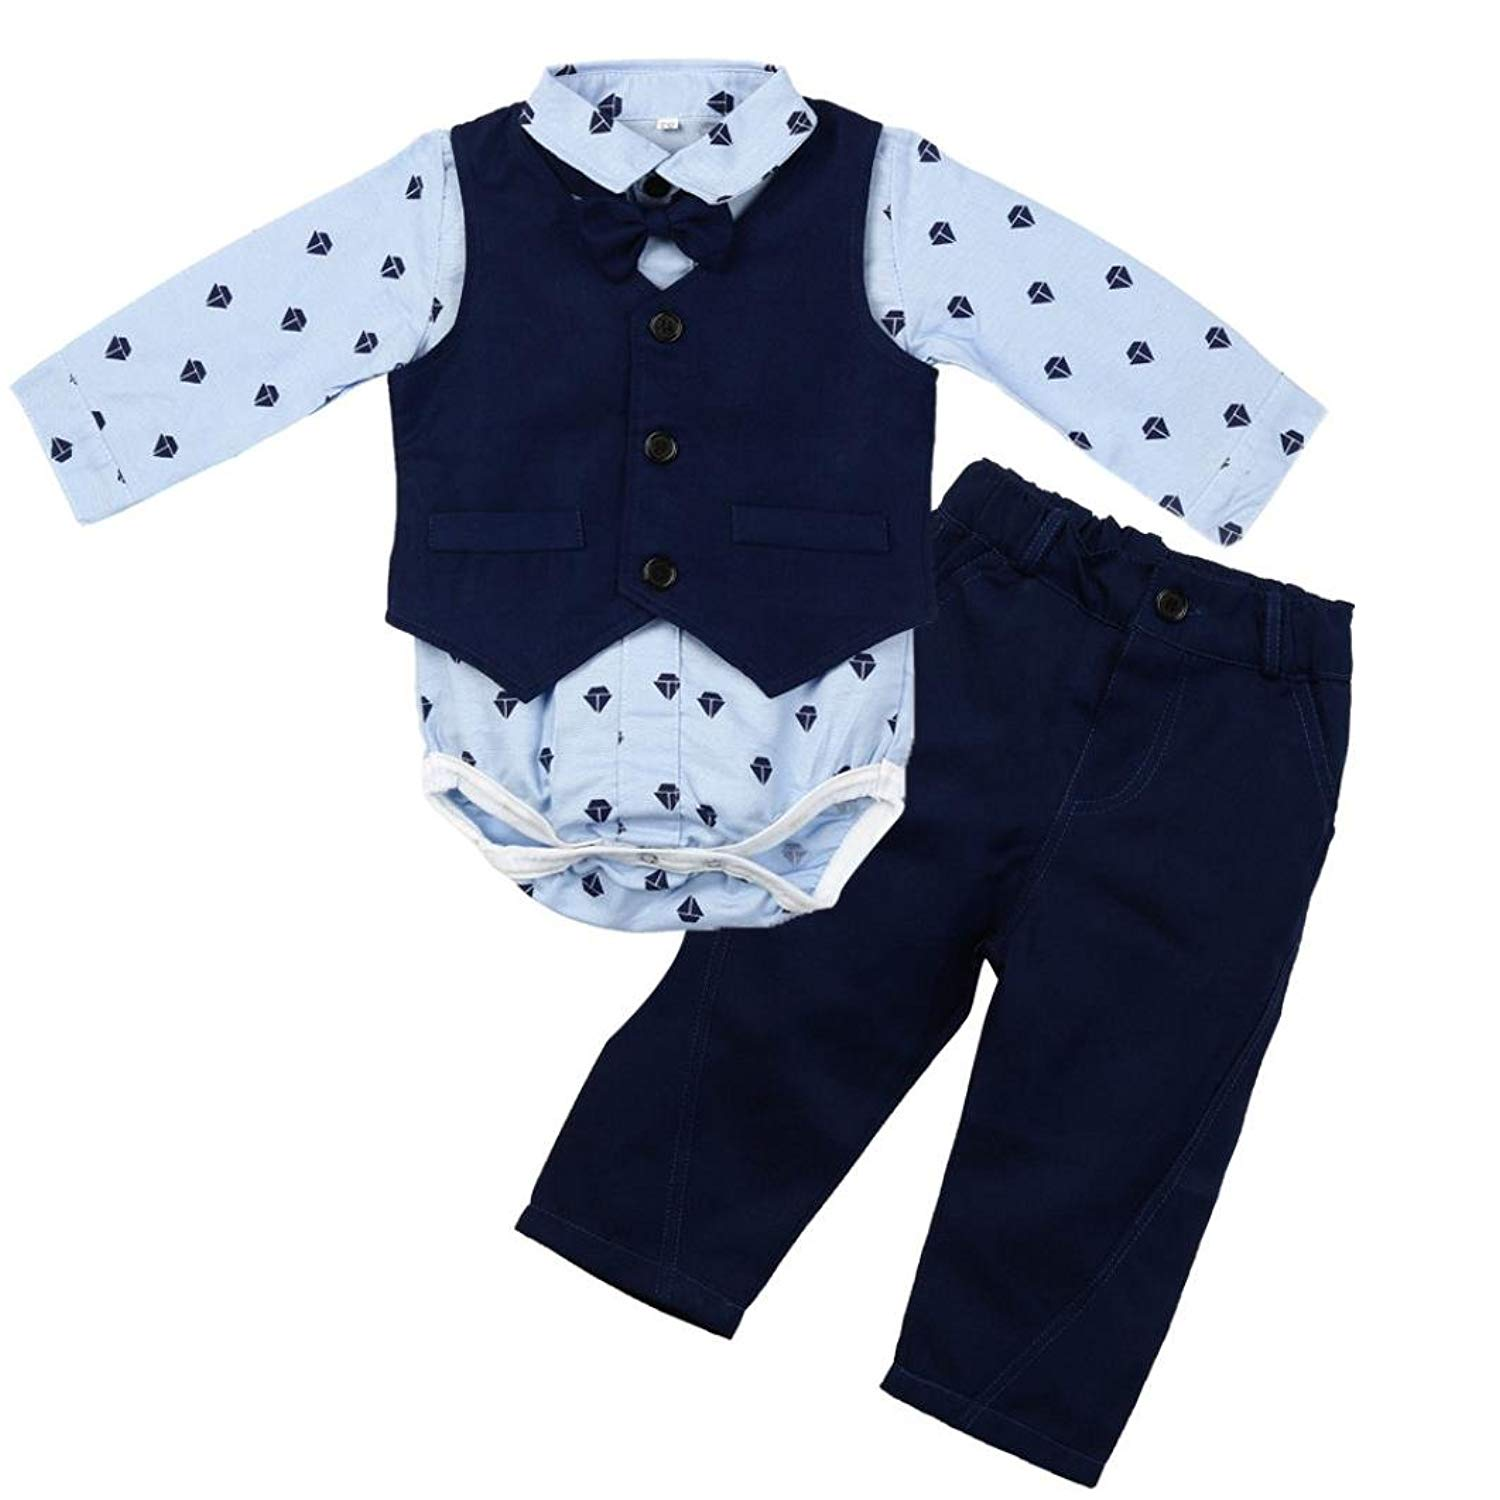 aa92b93bd Get Quotations · Boy Clothes Set for 0-24 Months,3Pcs Infant Toddler Baby  Boy Long Sleeve